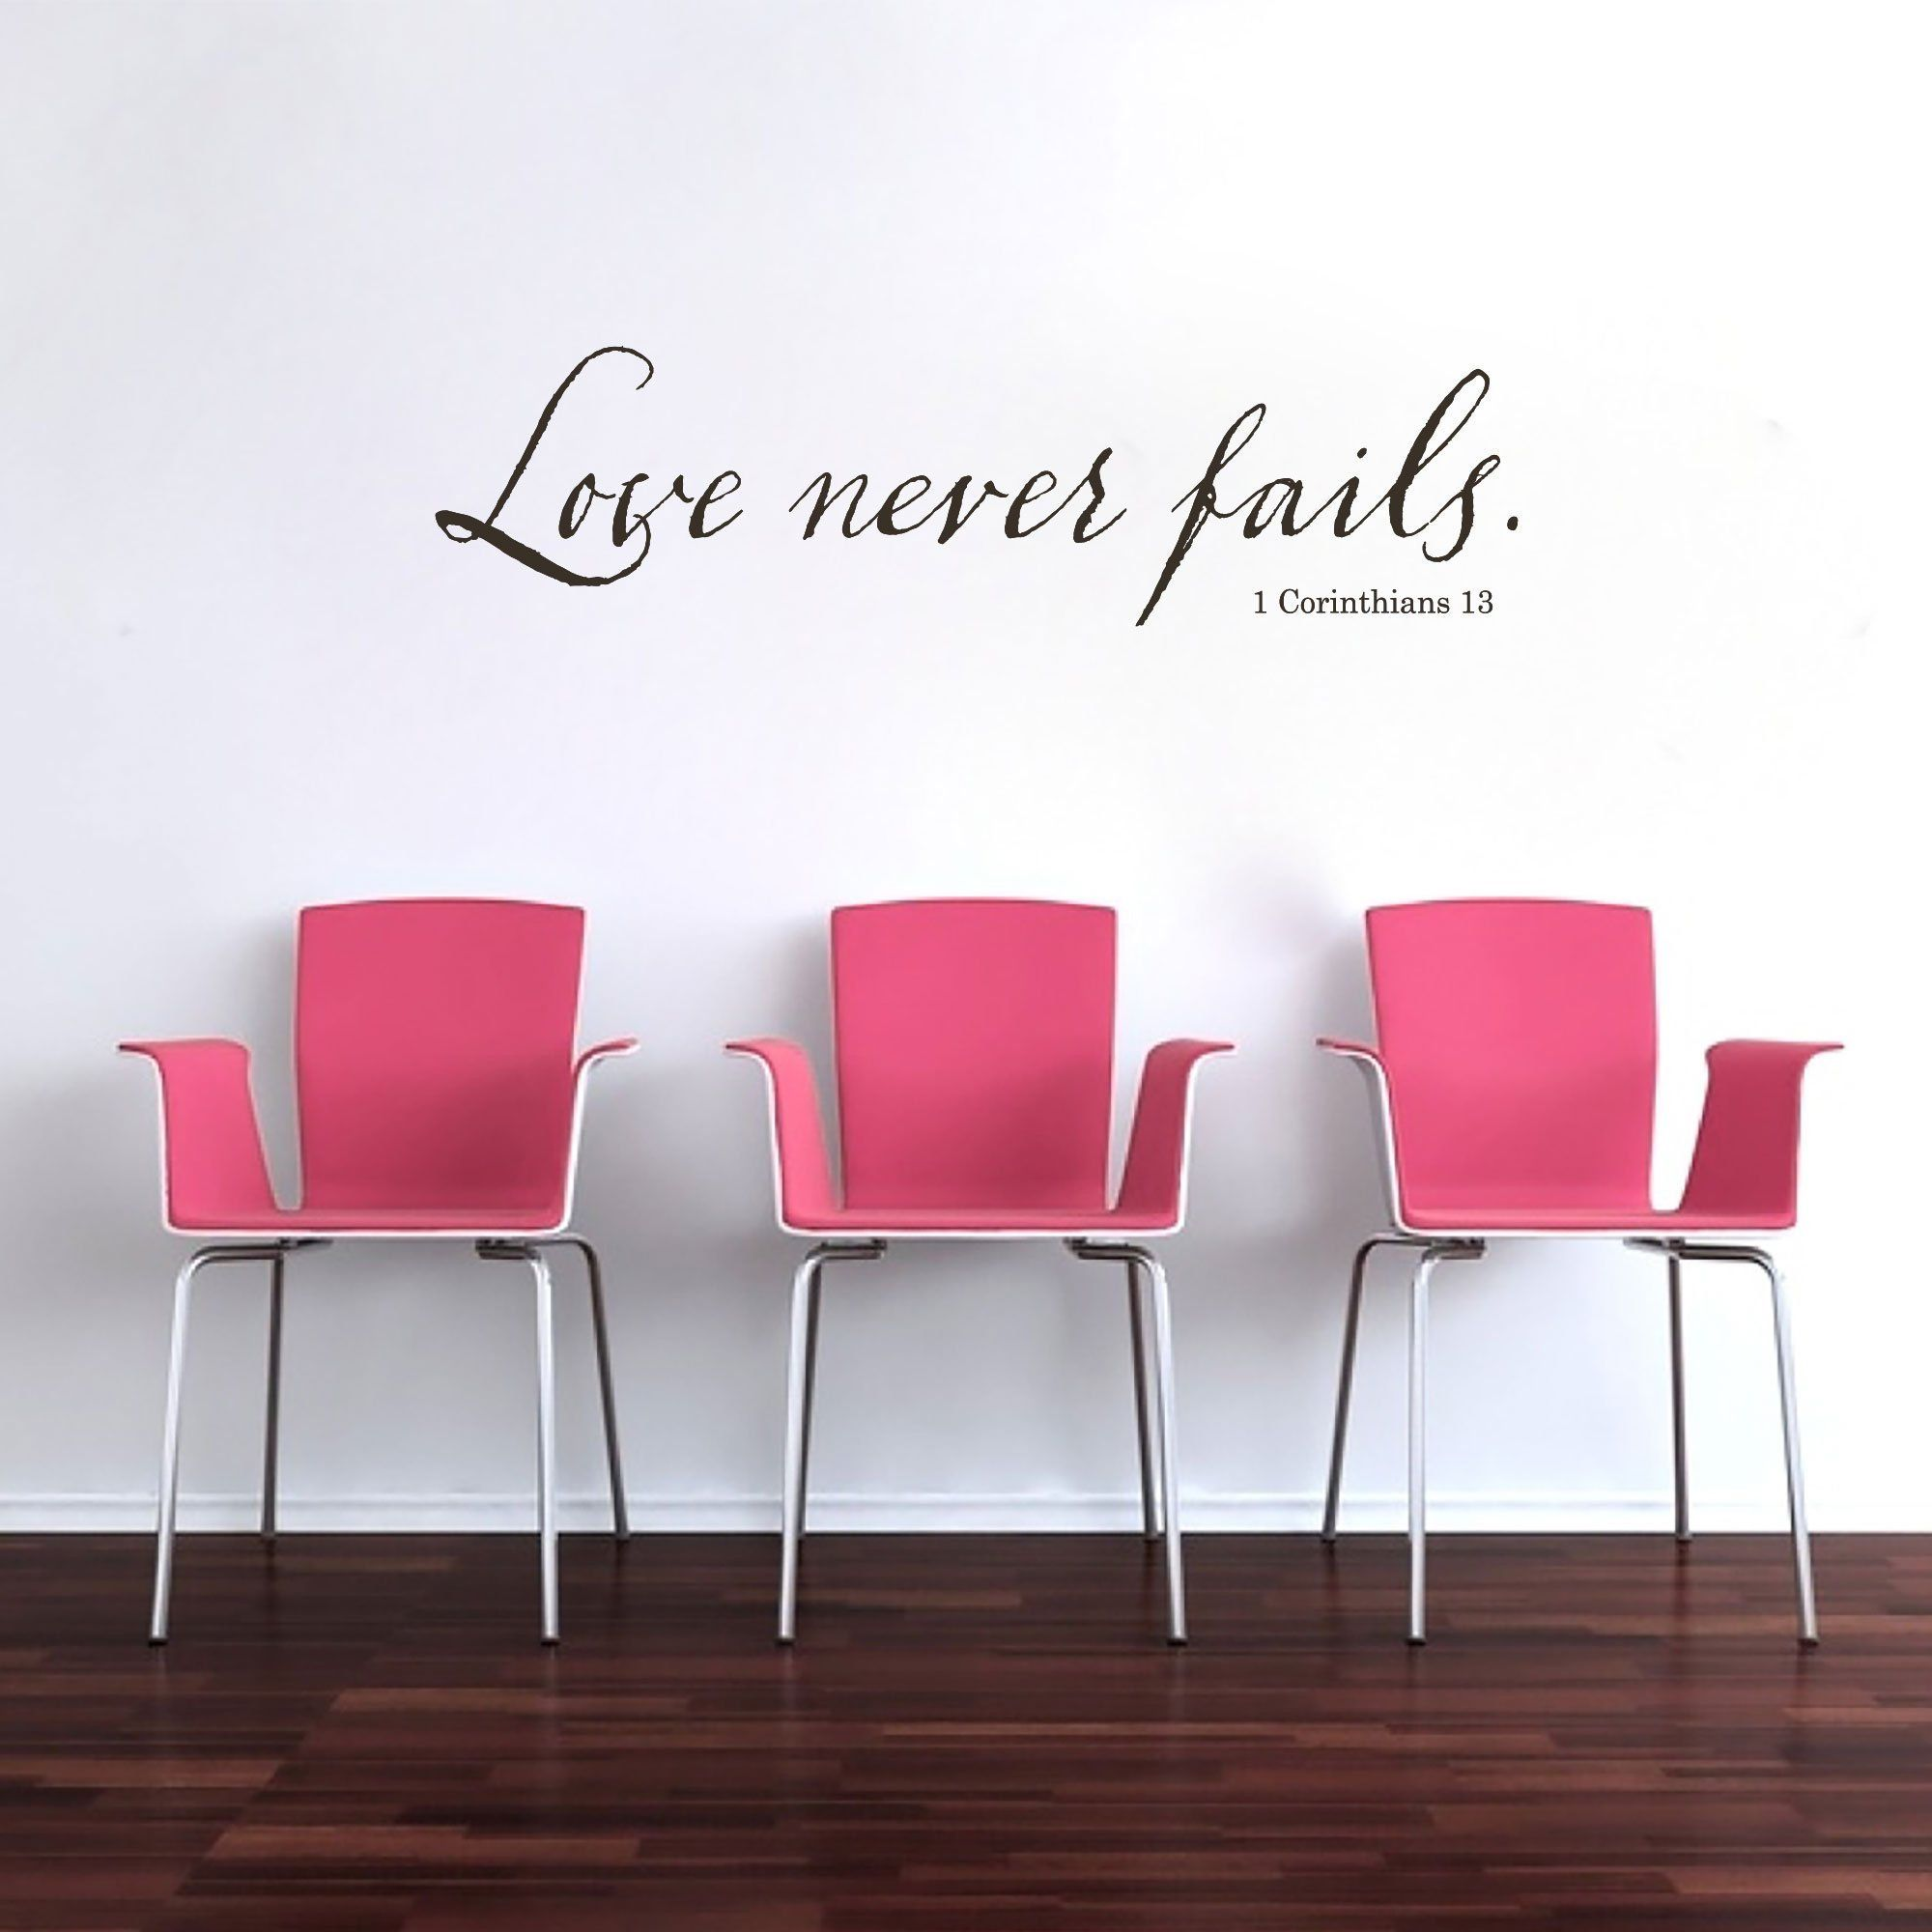 1 Corinthians 13 Wall Decor Wall Stickers Decals Wall Decoration Wall Murals Wall Script Letters Scripture Wall Art Bible Verse Q17 Bible Verse Wall Art Wall Decor Christian Wall Decals